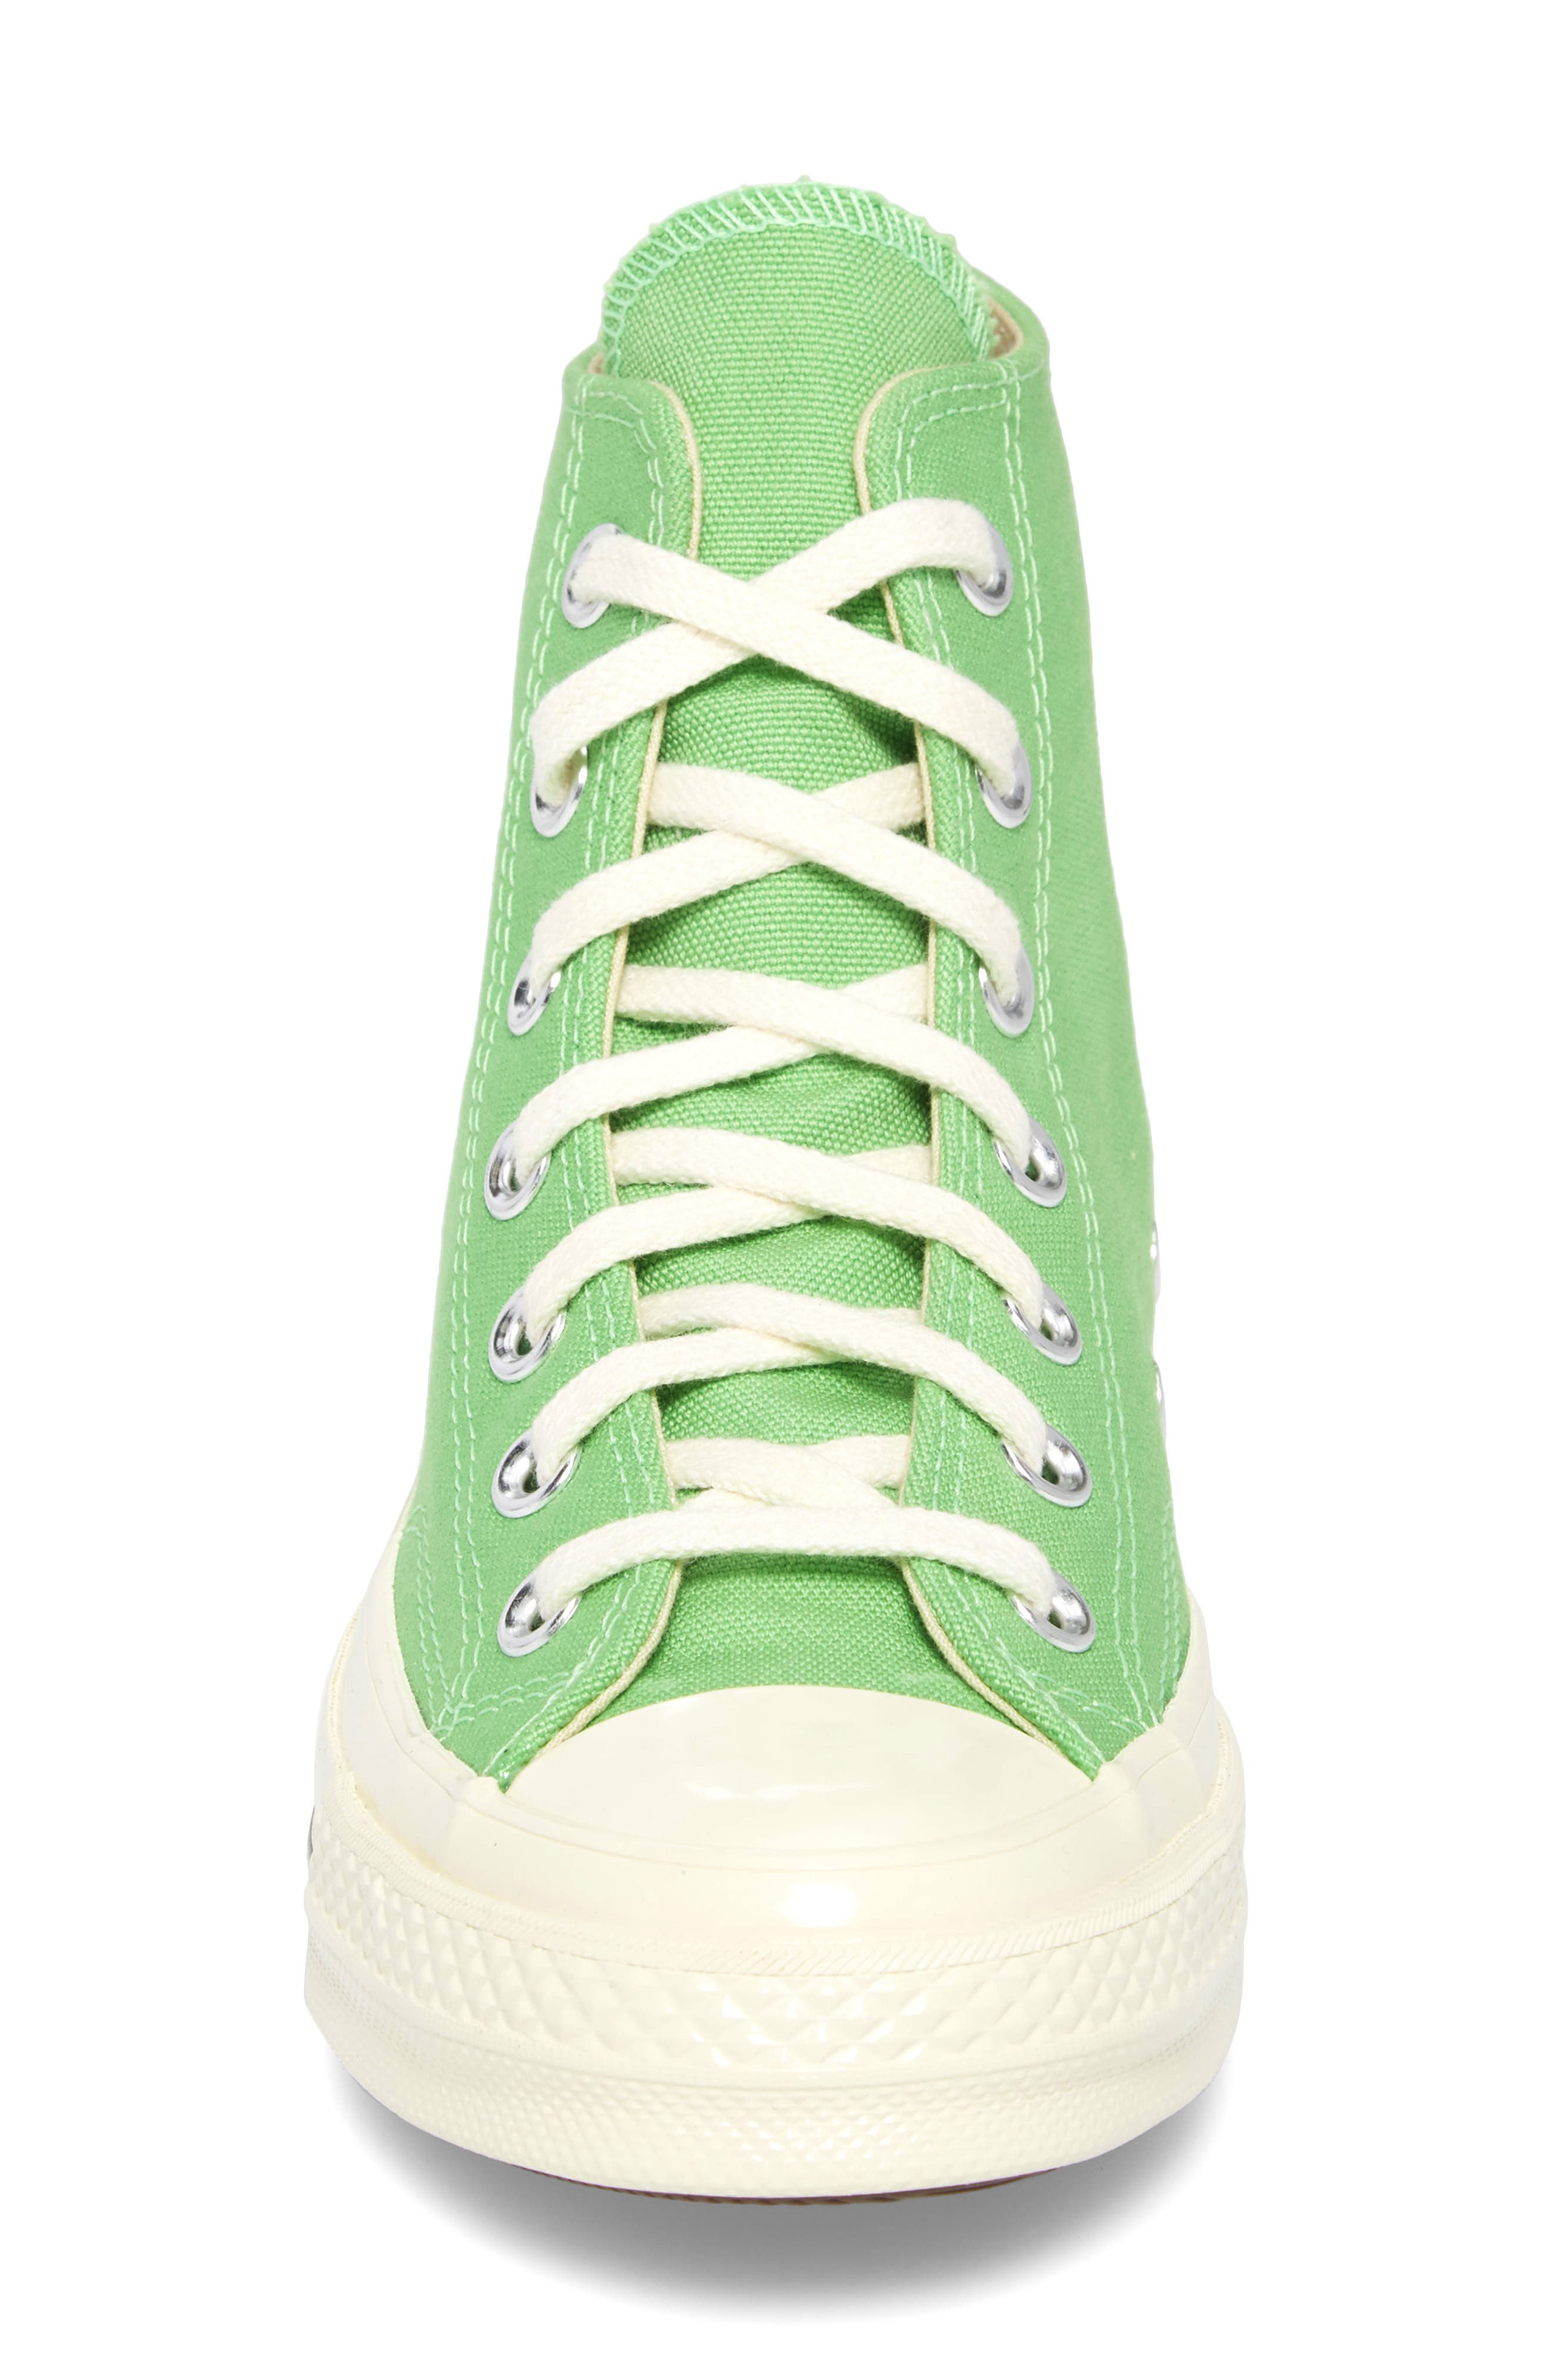 Chuck Taylor<sup>®</sup> All Star<sup>®</sup> 70 Brights High Top Sneaker,                             Alternate thumbnail 4, color,                             Illusion Green